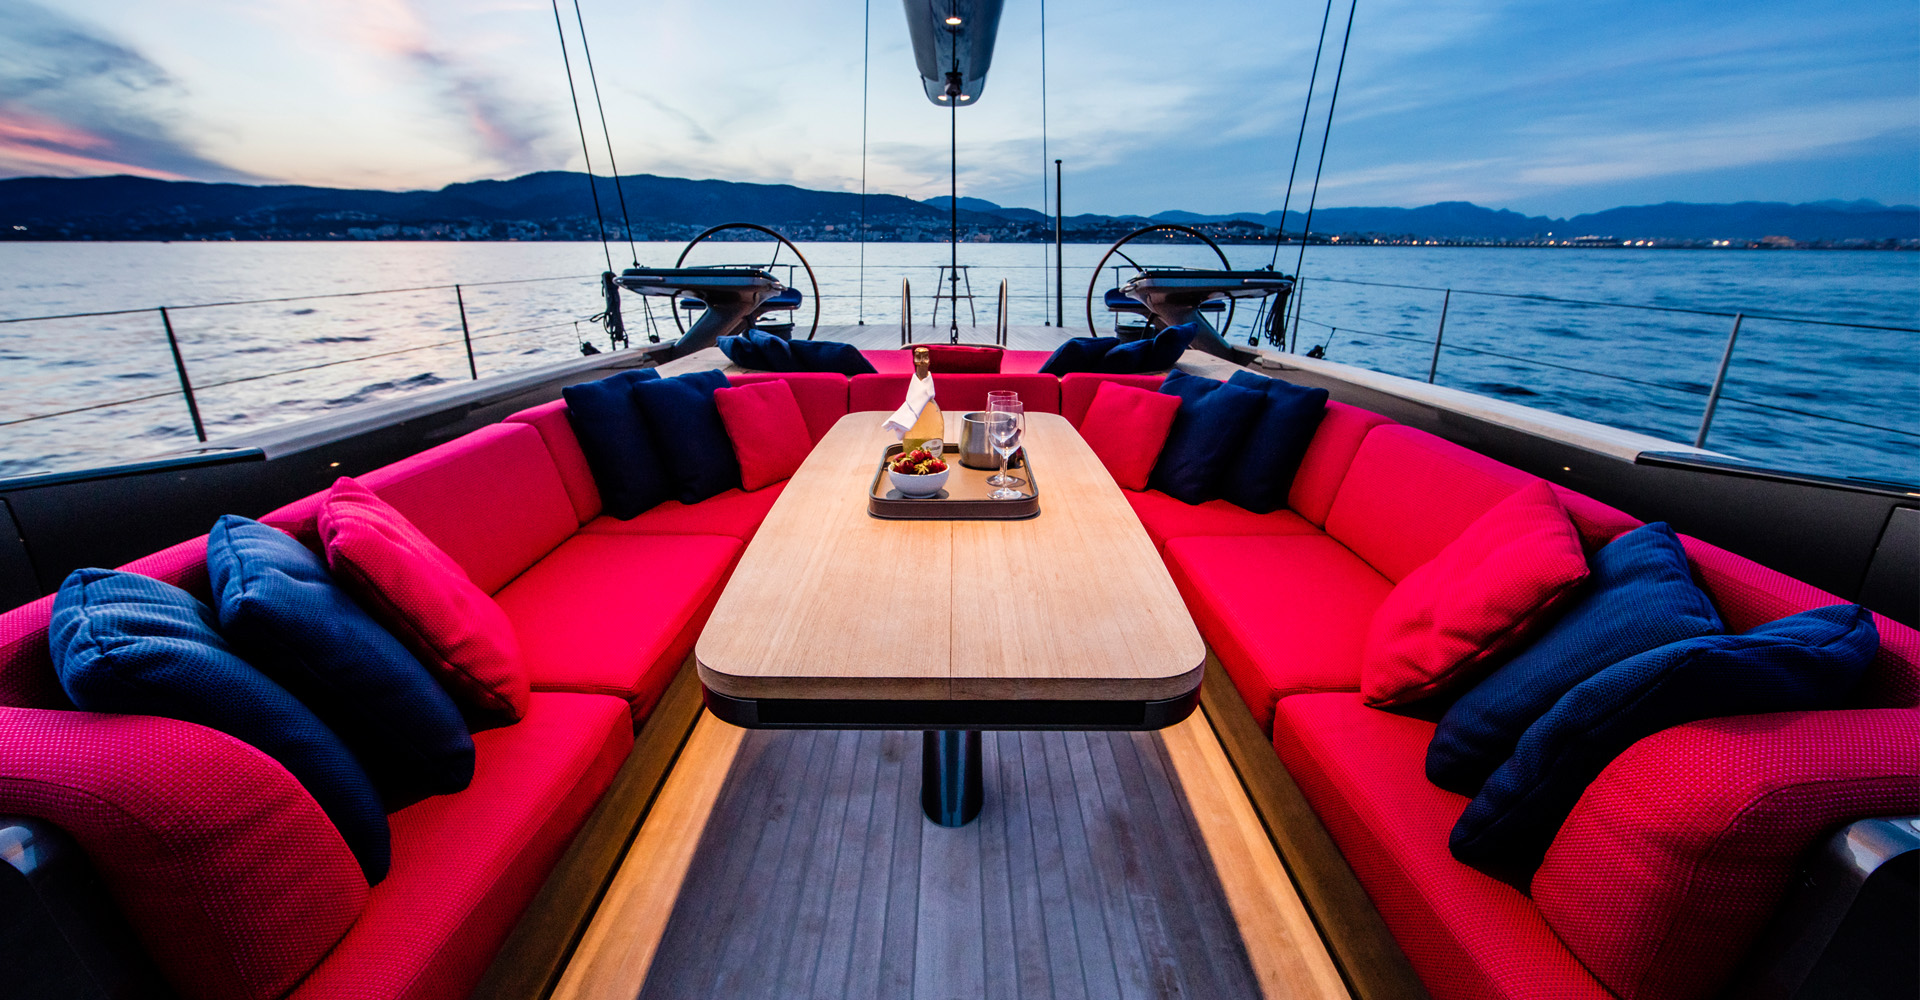 Aft deck of SY Missy